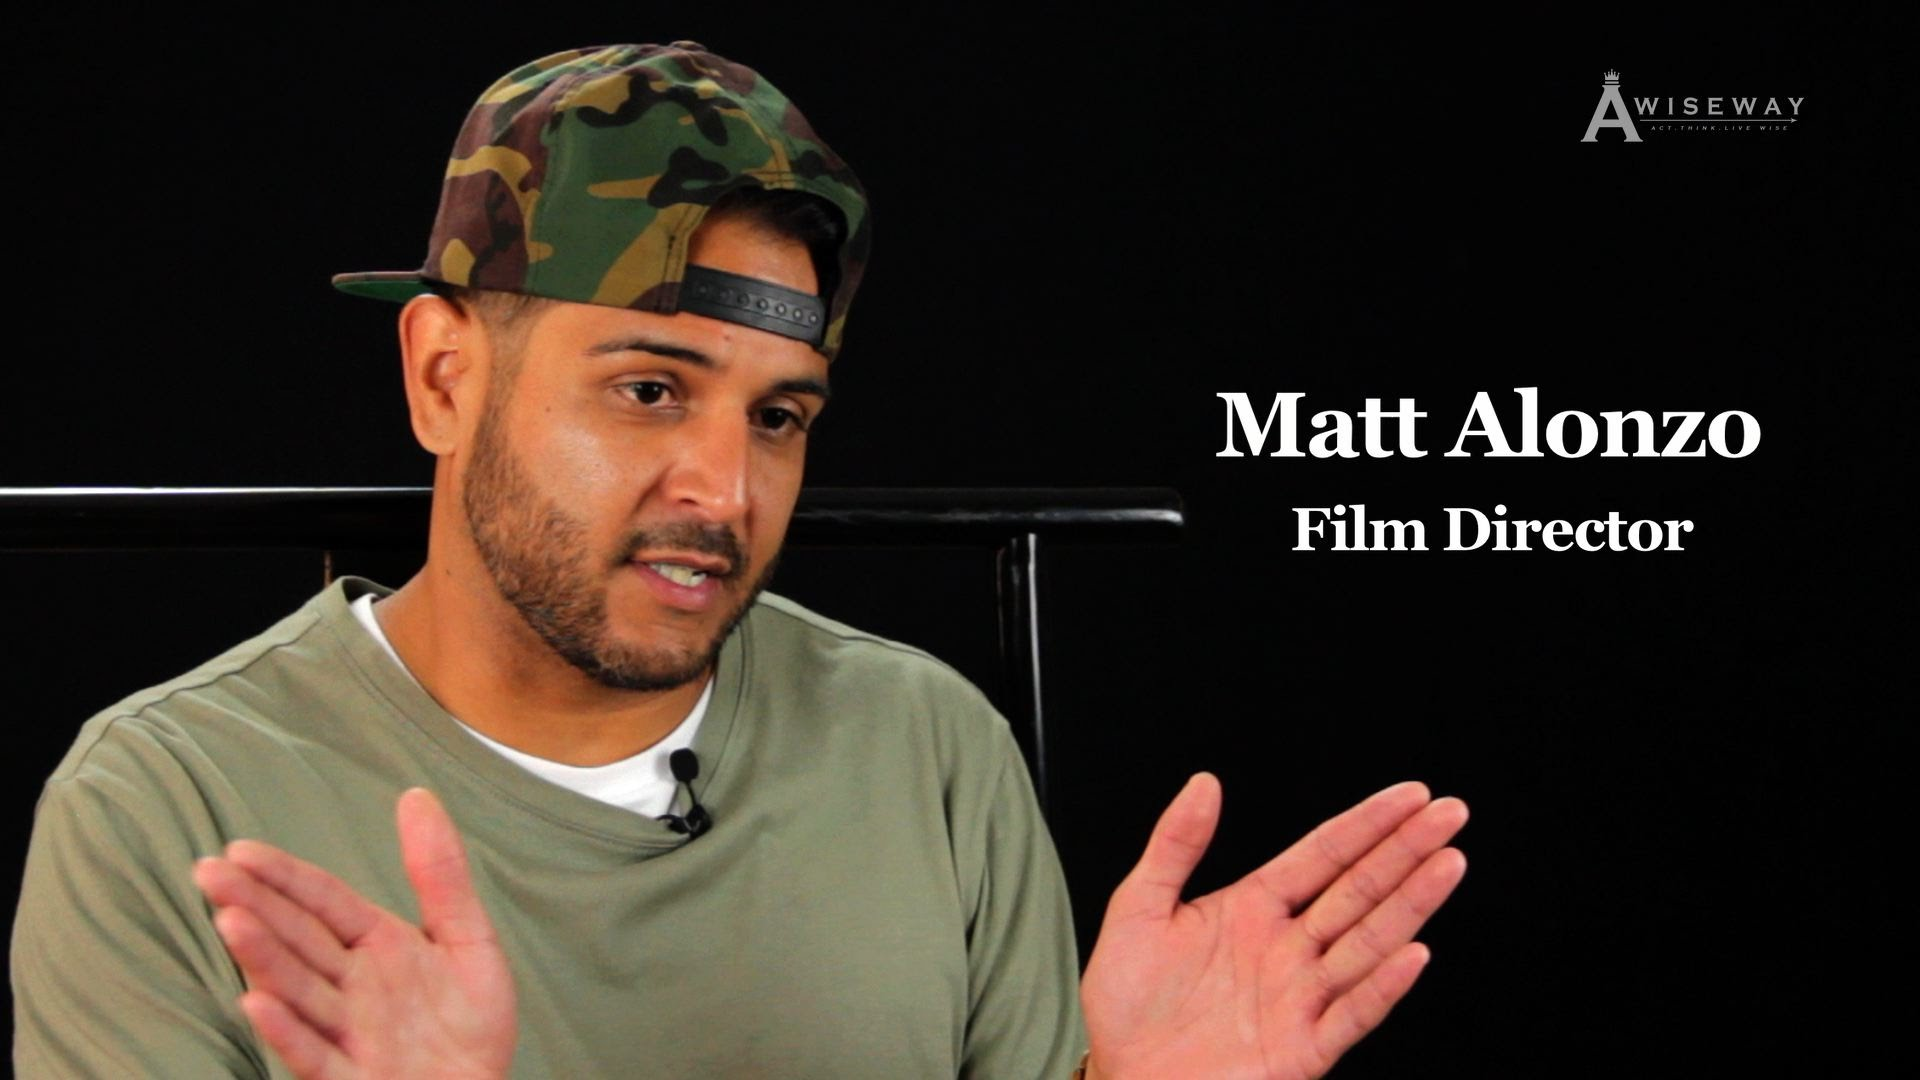 Matt Alonzo, Film Director Shares Importance of Networking in the Film Industry